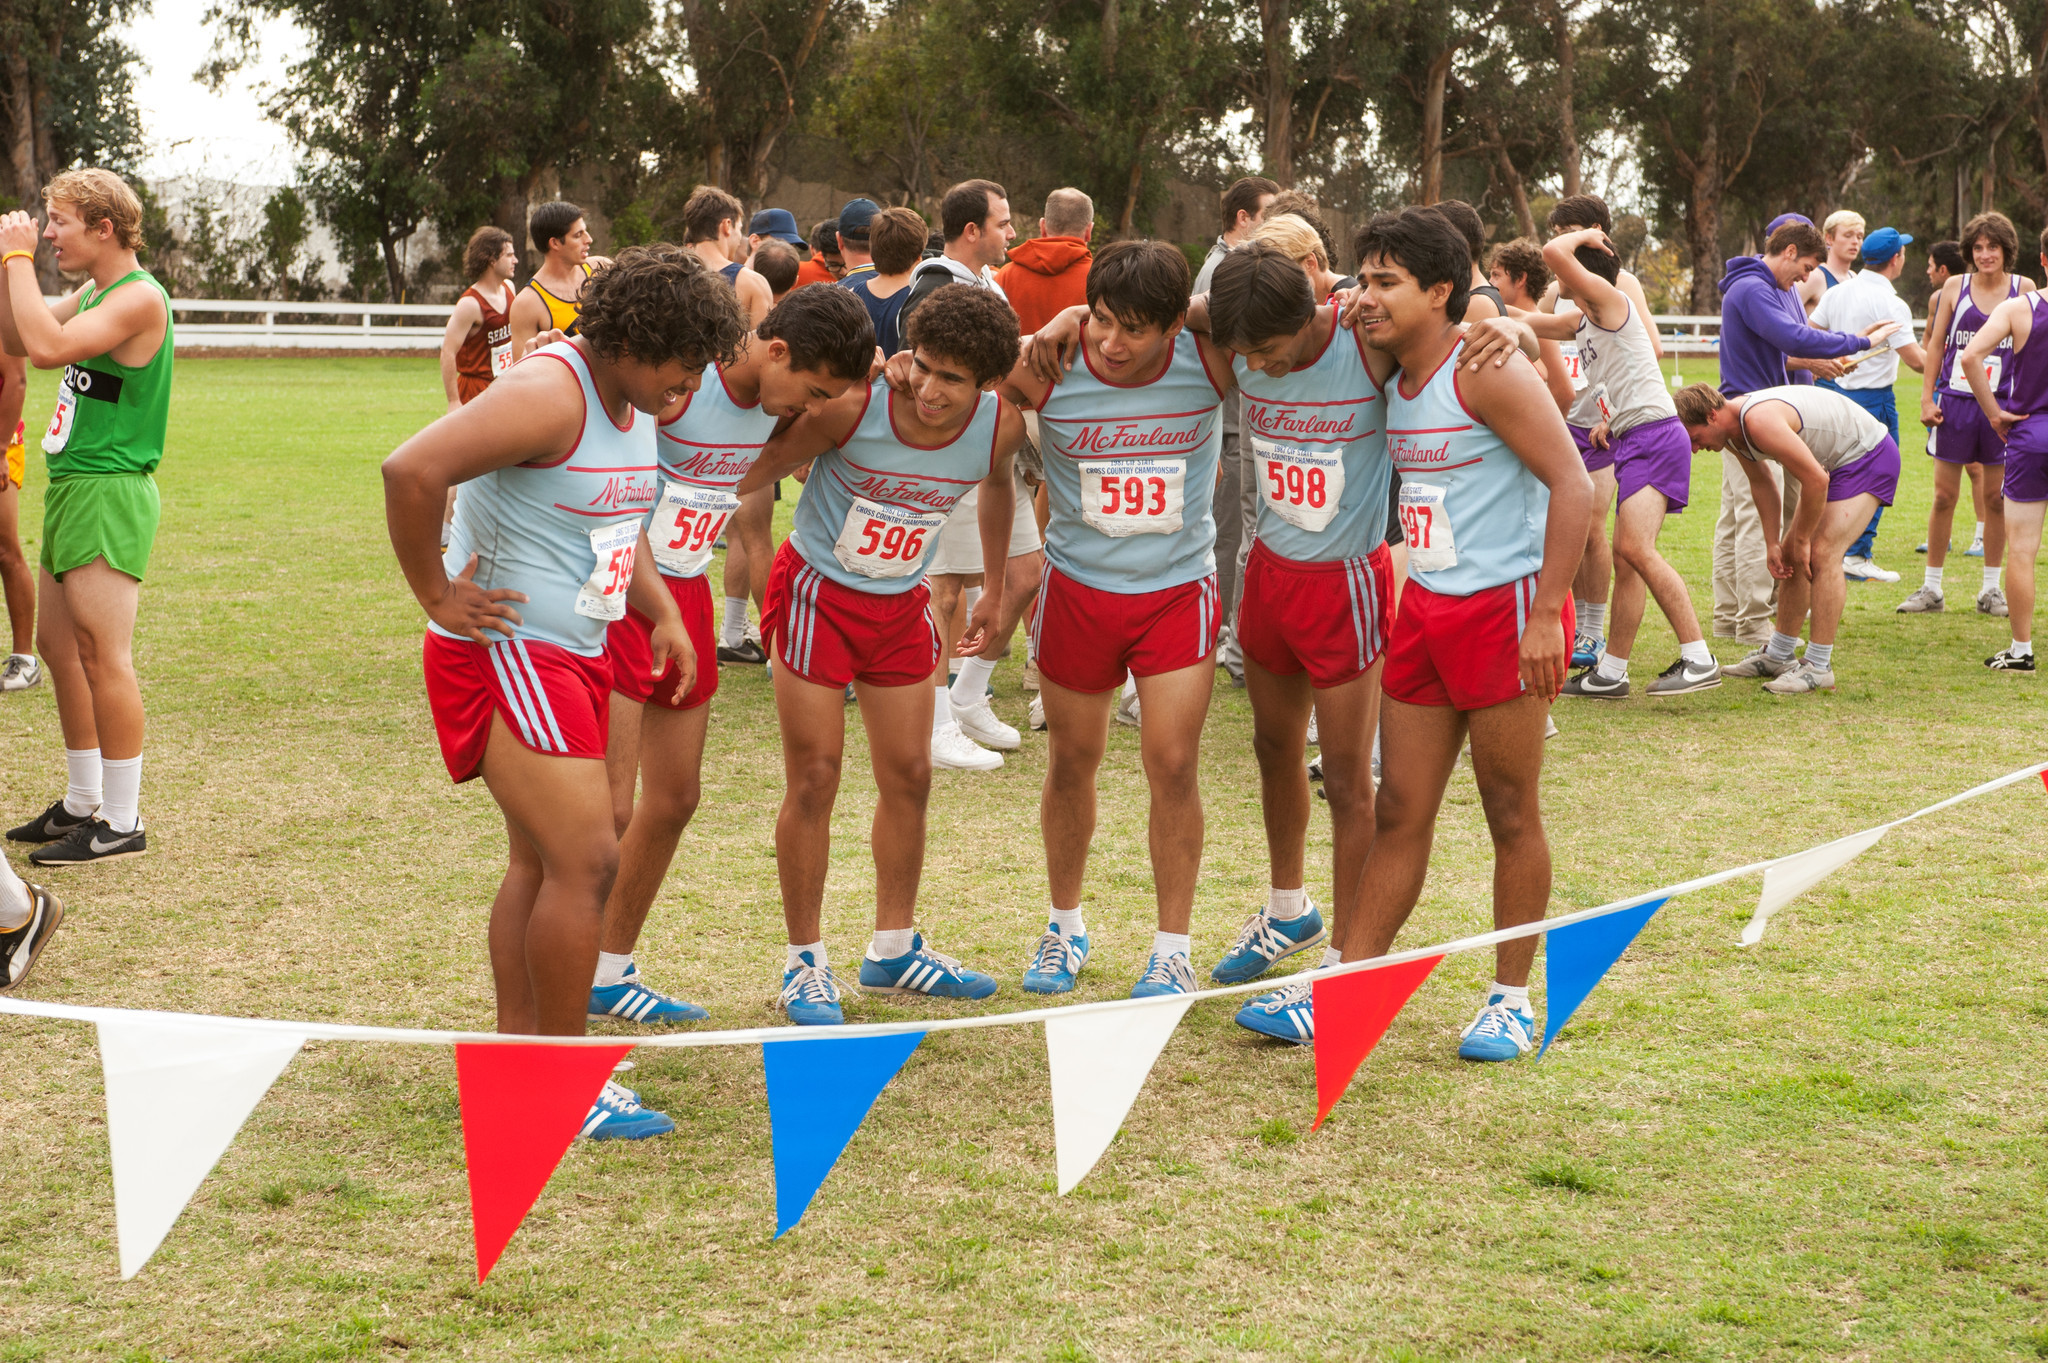 mcfarland usa essay essay mcfarland usa film revives long buried memory for runner los